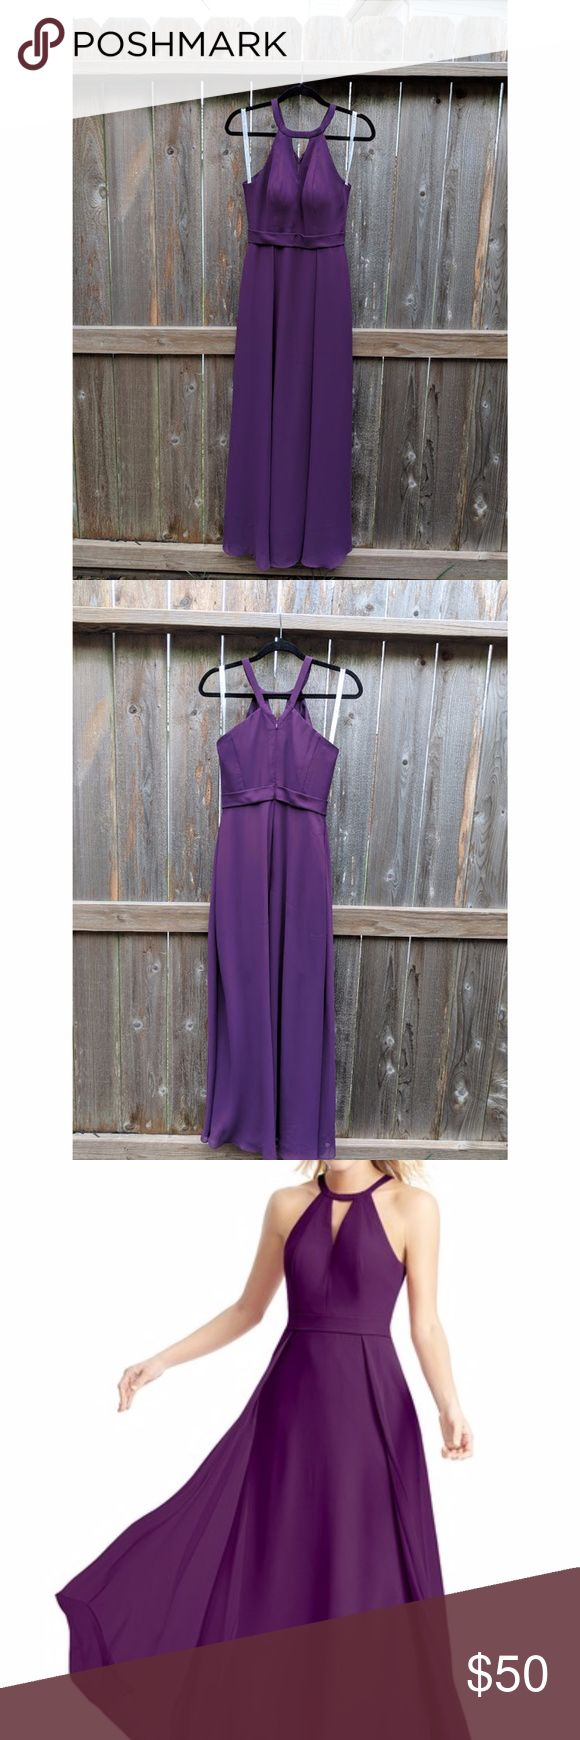 """Grape Maxi Dress (OBO) Used: Like new dress from Azazie Fit: Flattering fit for most with hidden pockets Fabric: Soft fabric lays comfortably on hips and thighs, will not ride up while walking or dancing, not see through Length: I'm 5'3"""" and length was perfect with 3"""" pumps Size: 2-4 US* (could fit someone who usually wears a regular size small, I'm 125 lbs and it was a perfect fit) Price: All prices are negotiable, let's make a deal *See screenshot of dress measurements azazie Dresses Maxi"""